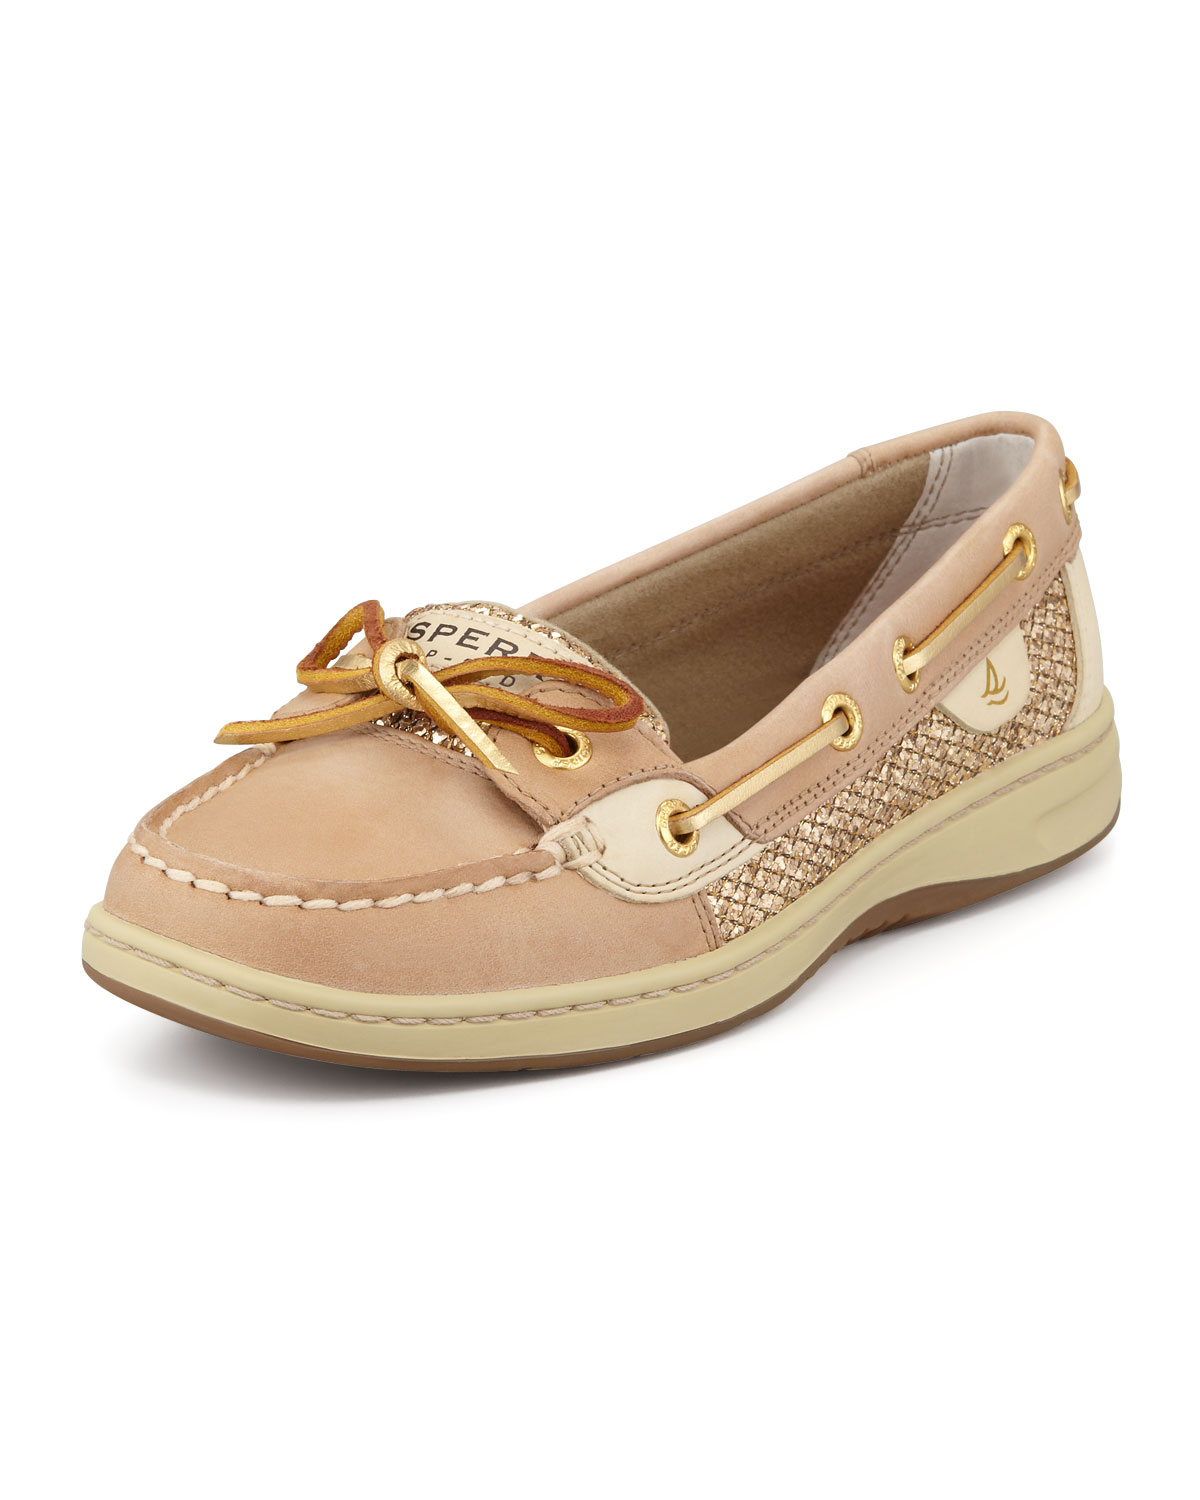 Sperry top-sider Gold Cup Authentic Original Boat Shoe in ... |Sperry Gold